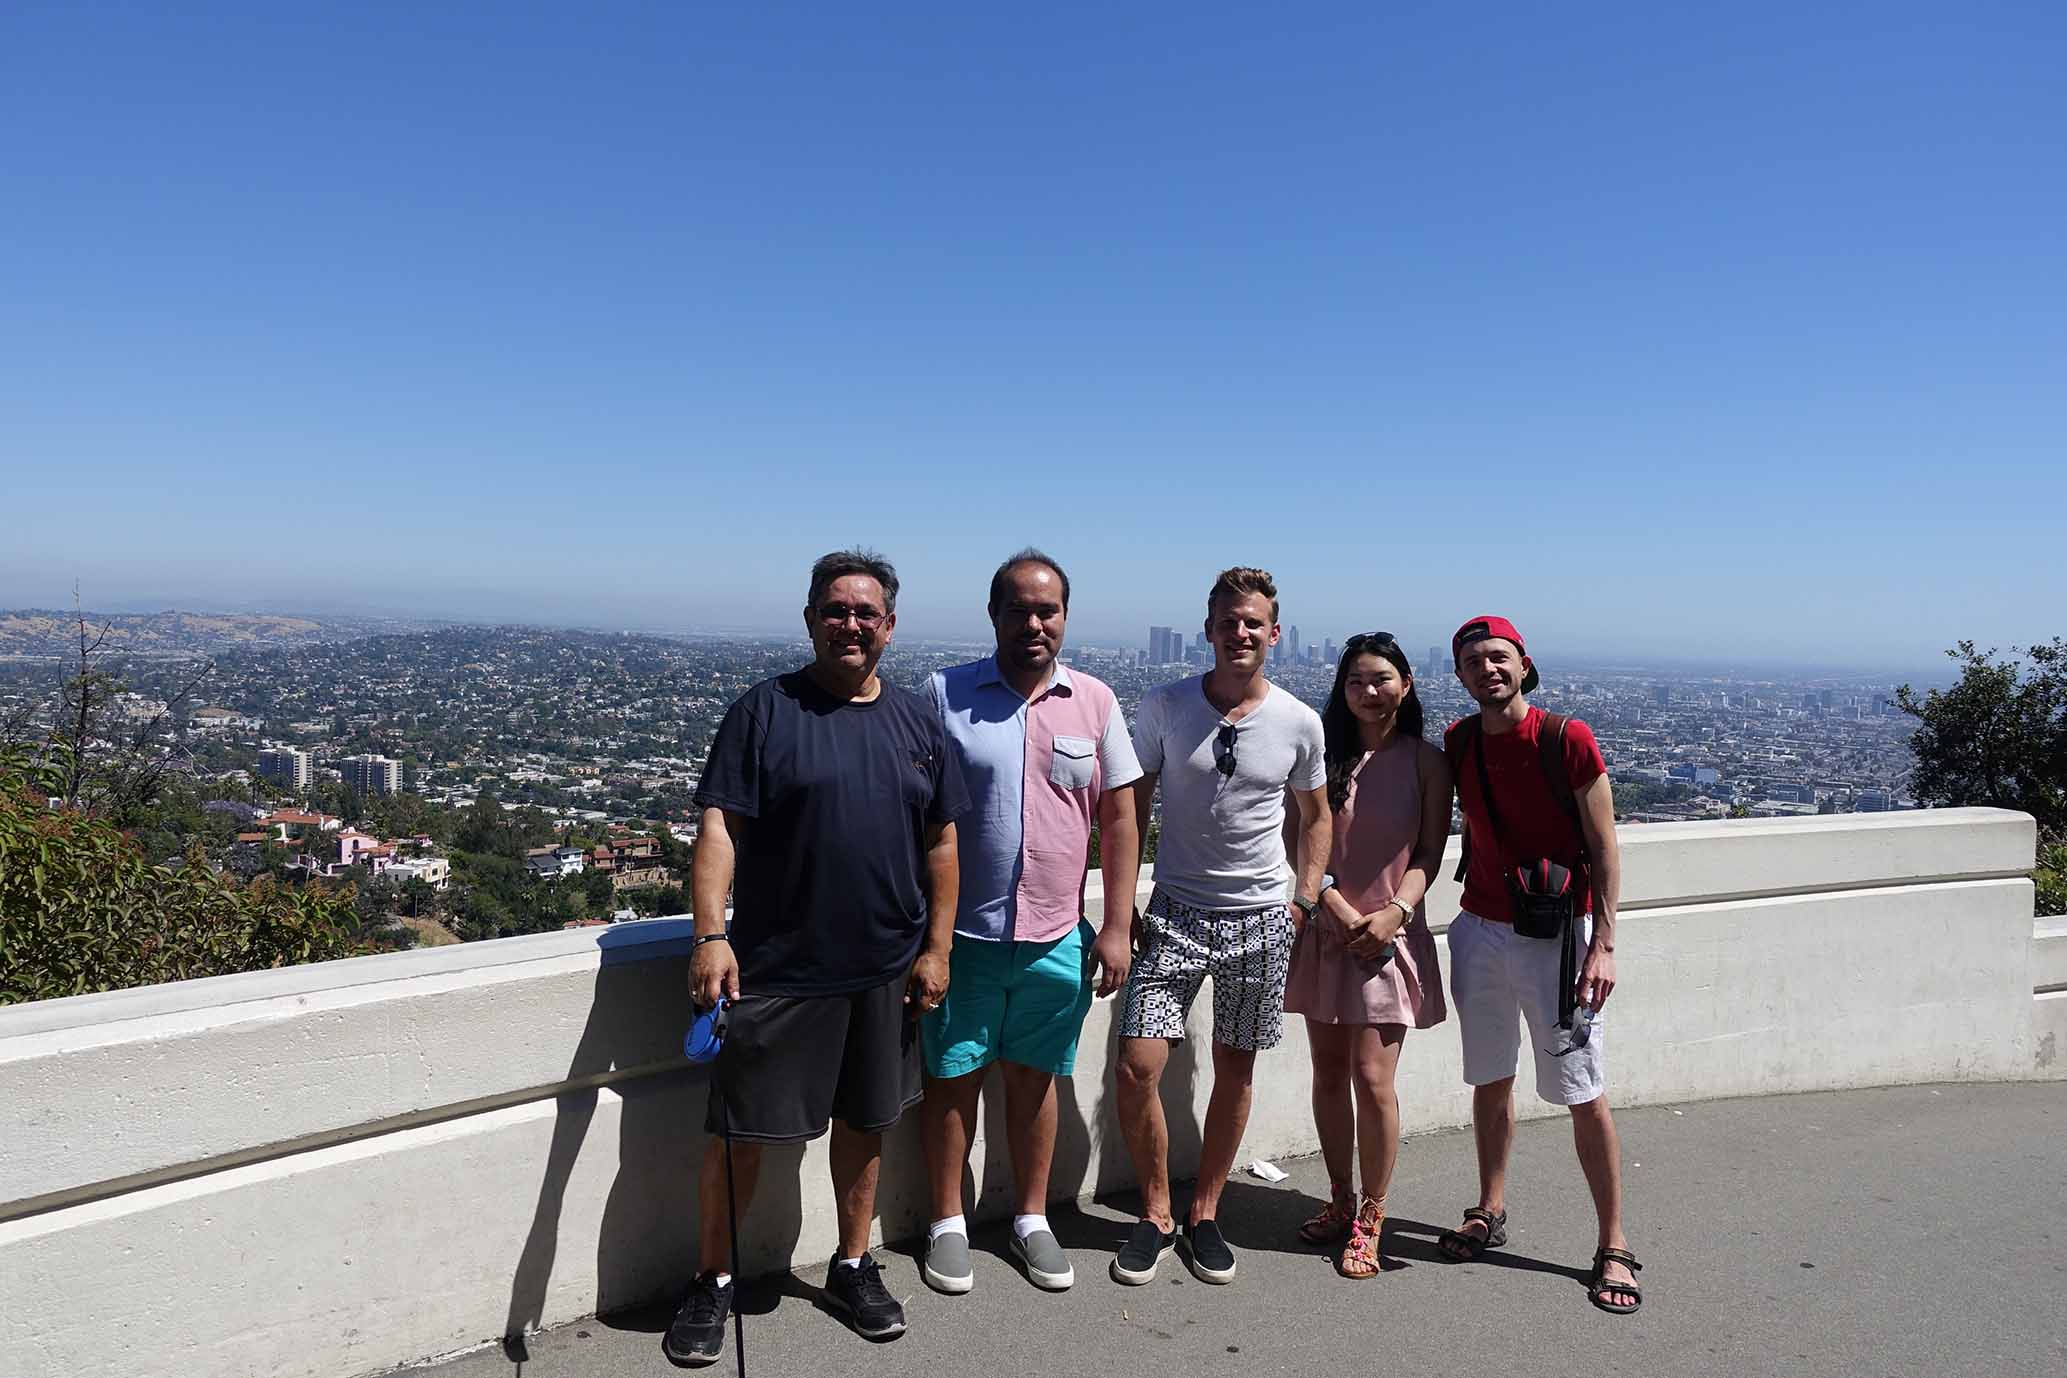 My highlights and travel tips of Los Angeles